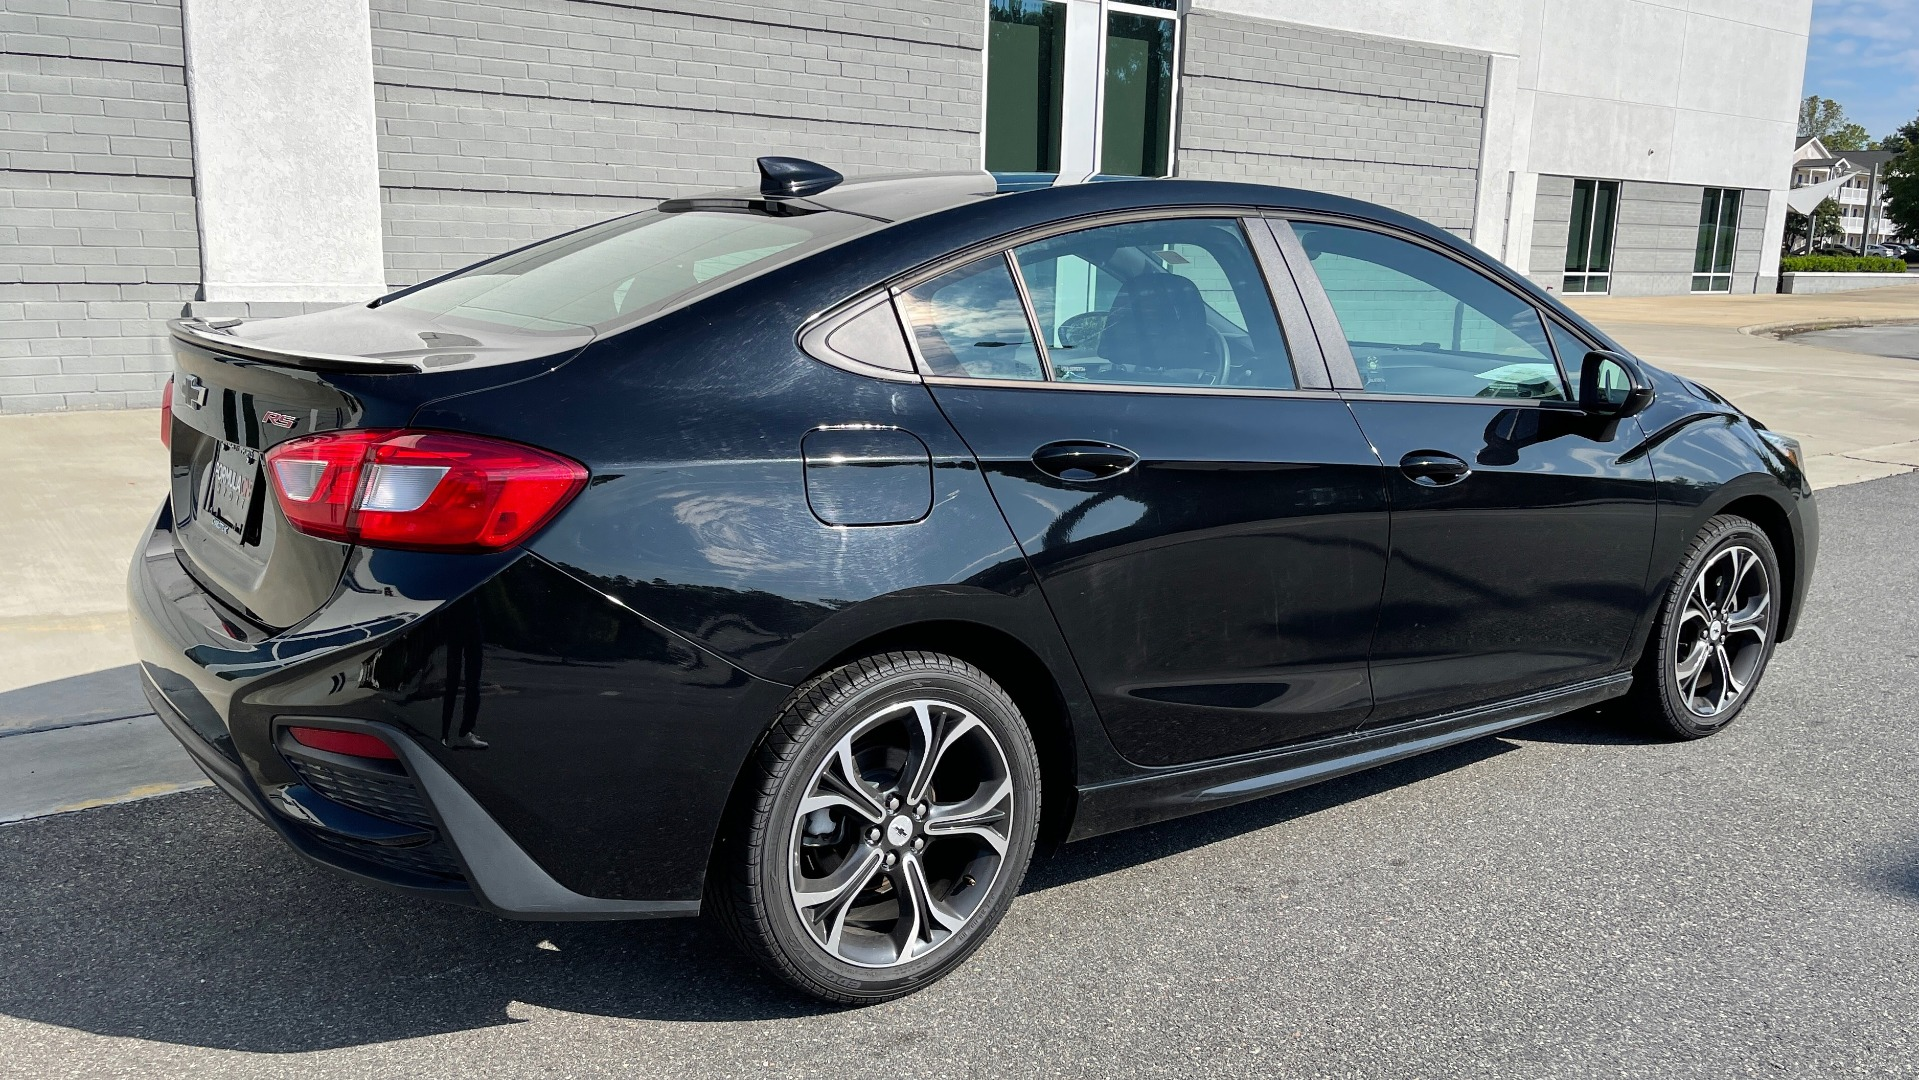 Used 2019 Chevrolet CRUZE LT / 1.4L TURBO / 6-SPD AUTO / AIR CONDITIONING / REARVIEW for sale $18,495 at Formula Imports in Charlotte NC 28227 4